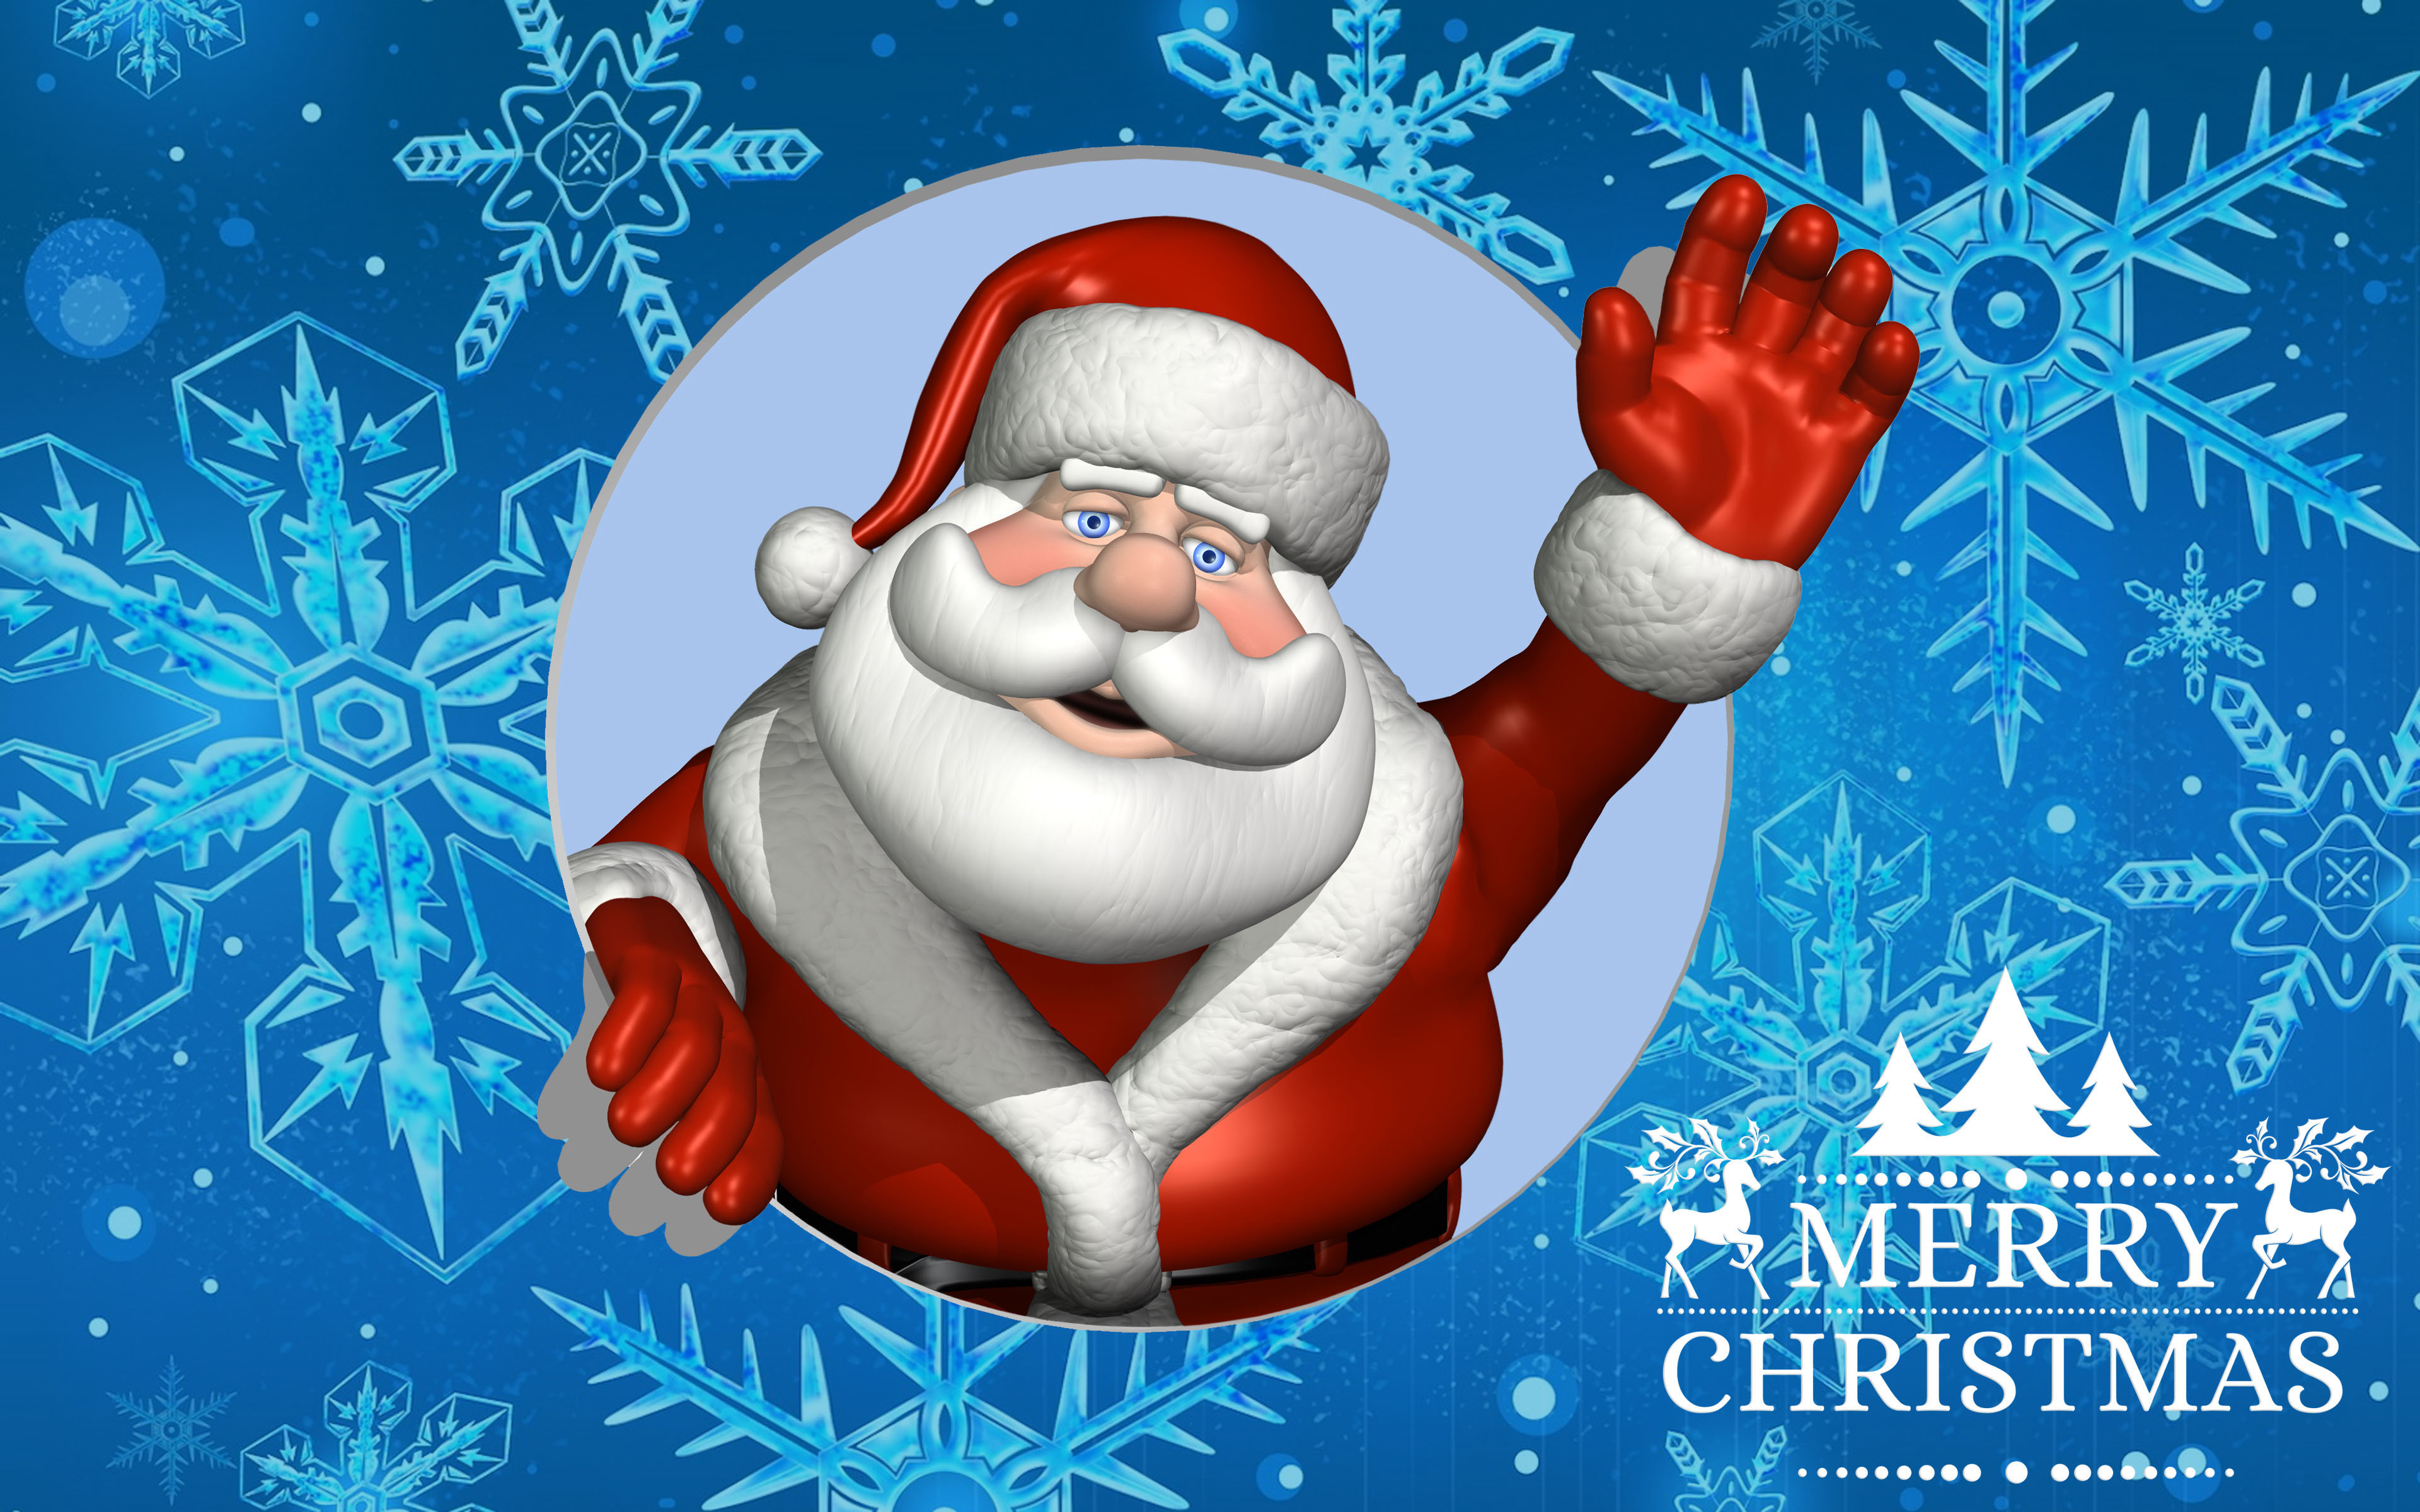 Happy New Year D Video Merry Christmas Greeting Card With Santa Claus Desktop